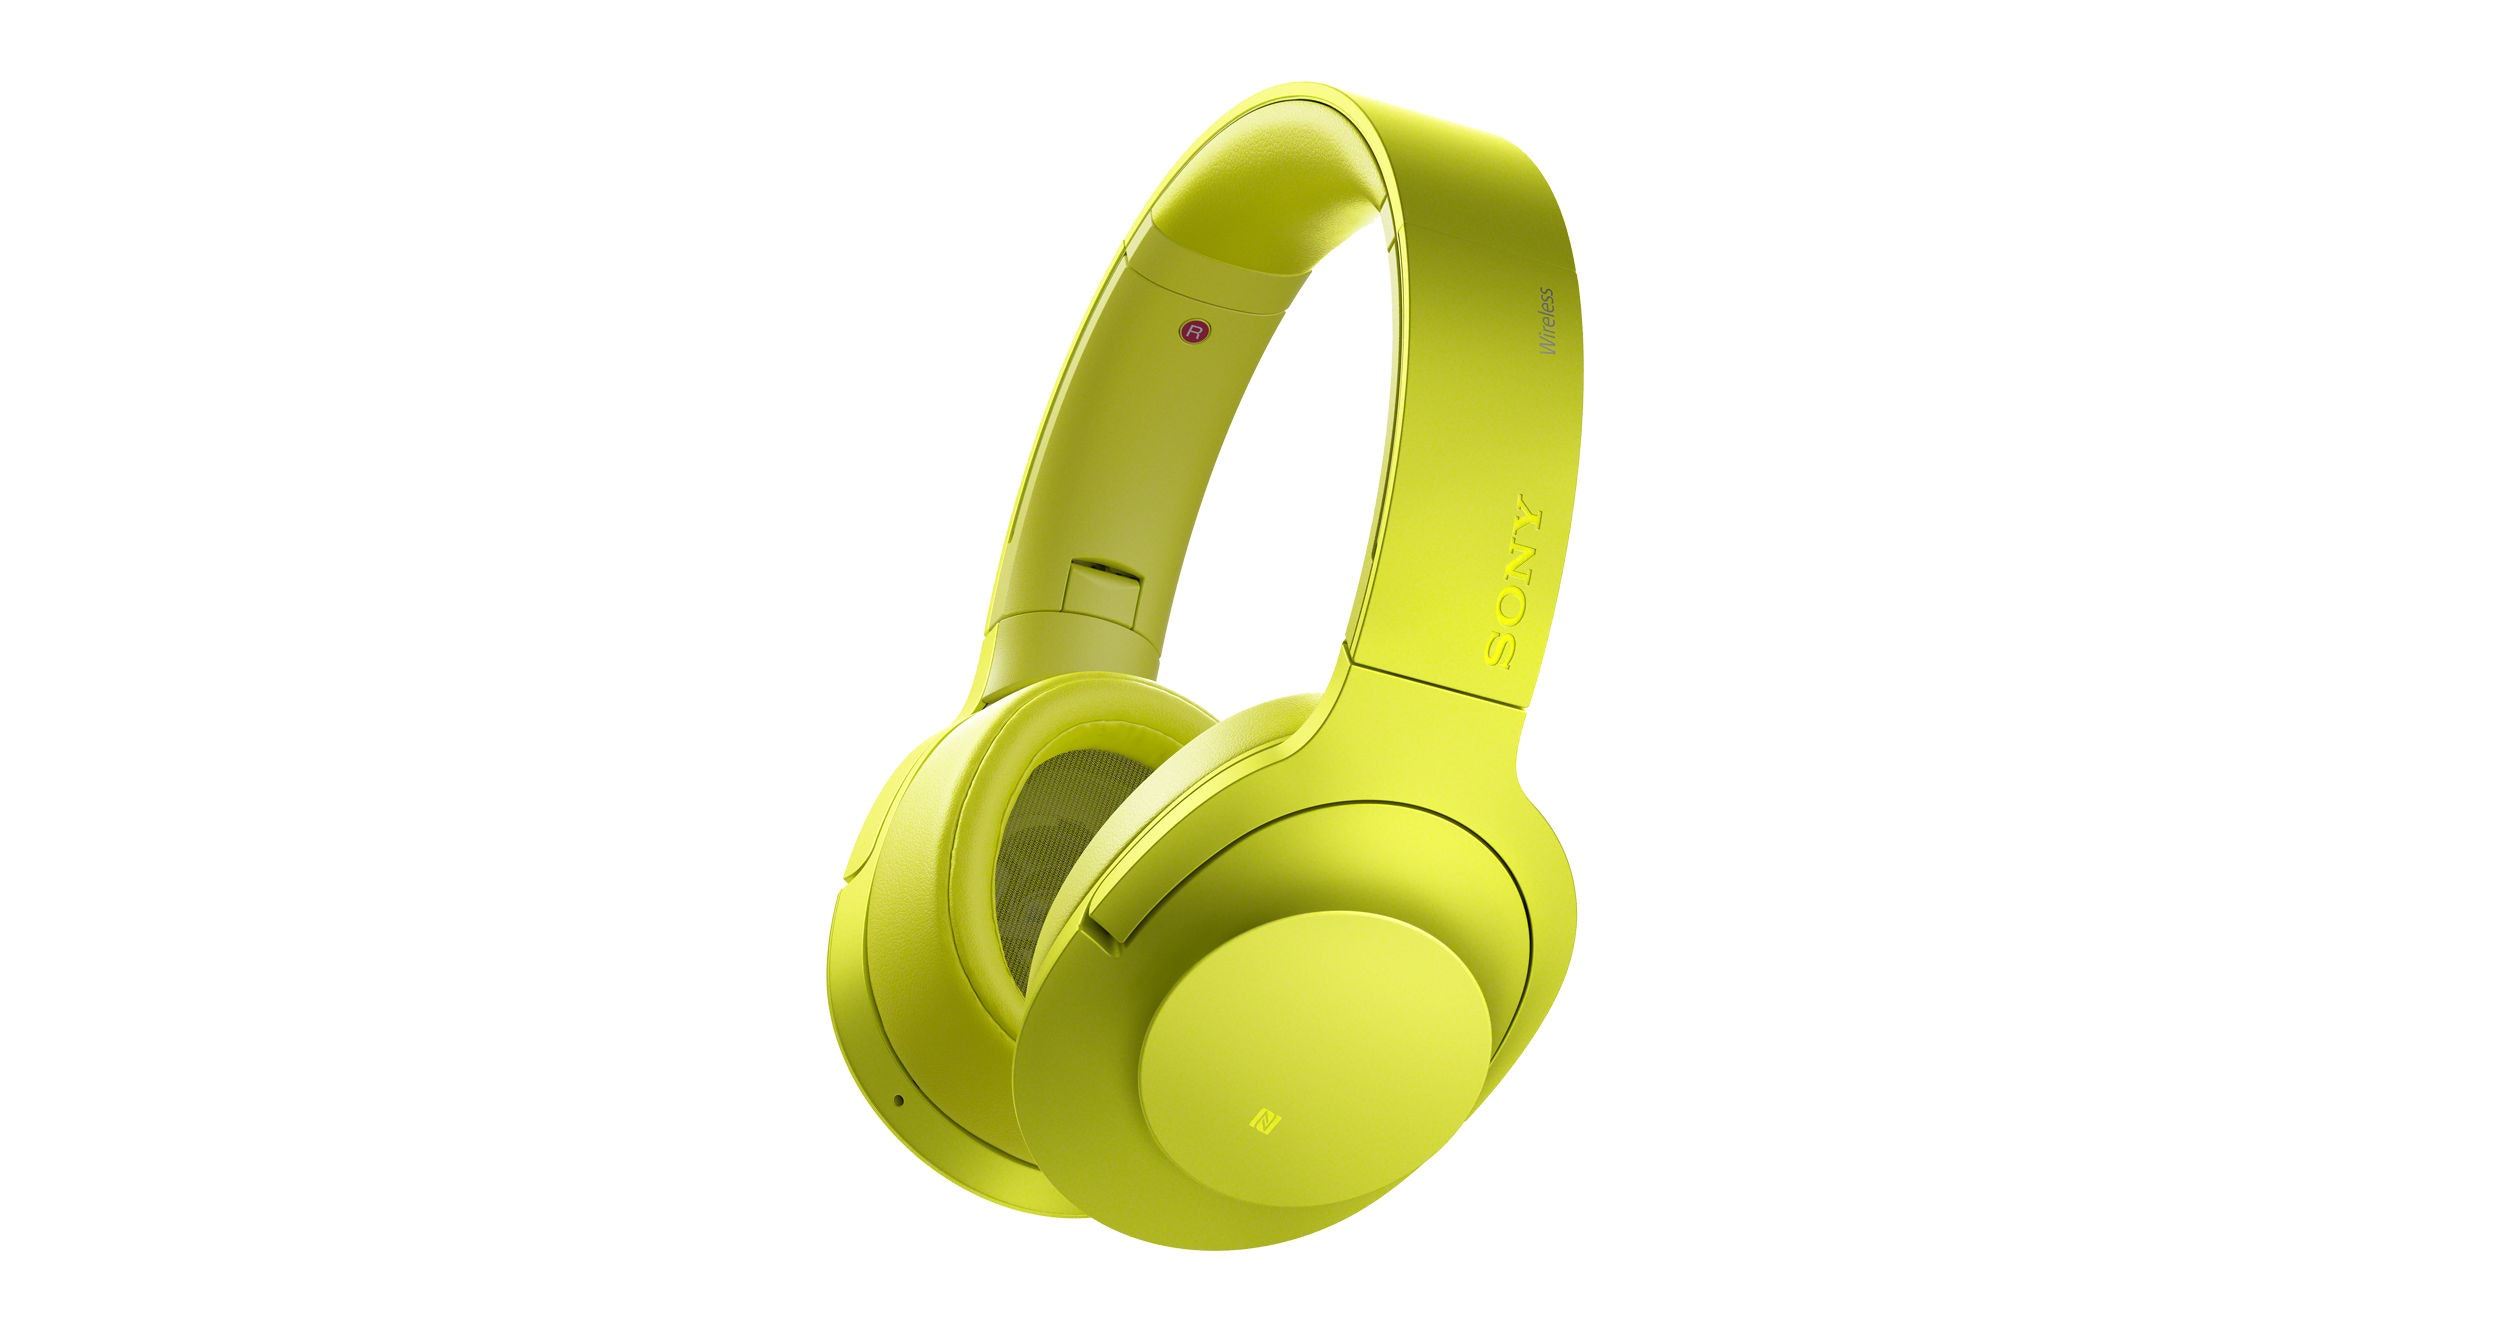 Stylish Wireless Noise Cancelling Headphones   MDR-100ABN   Sony UK